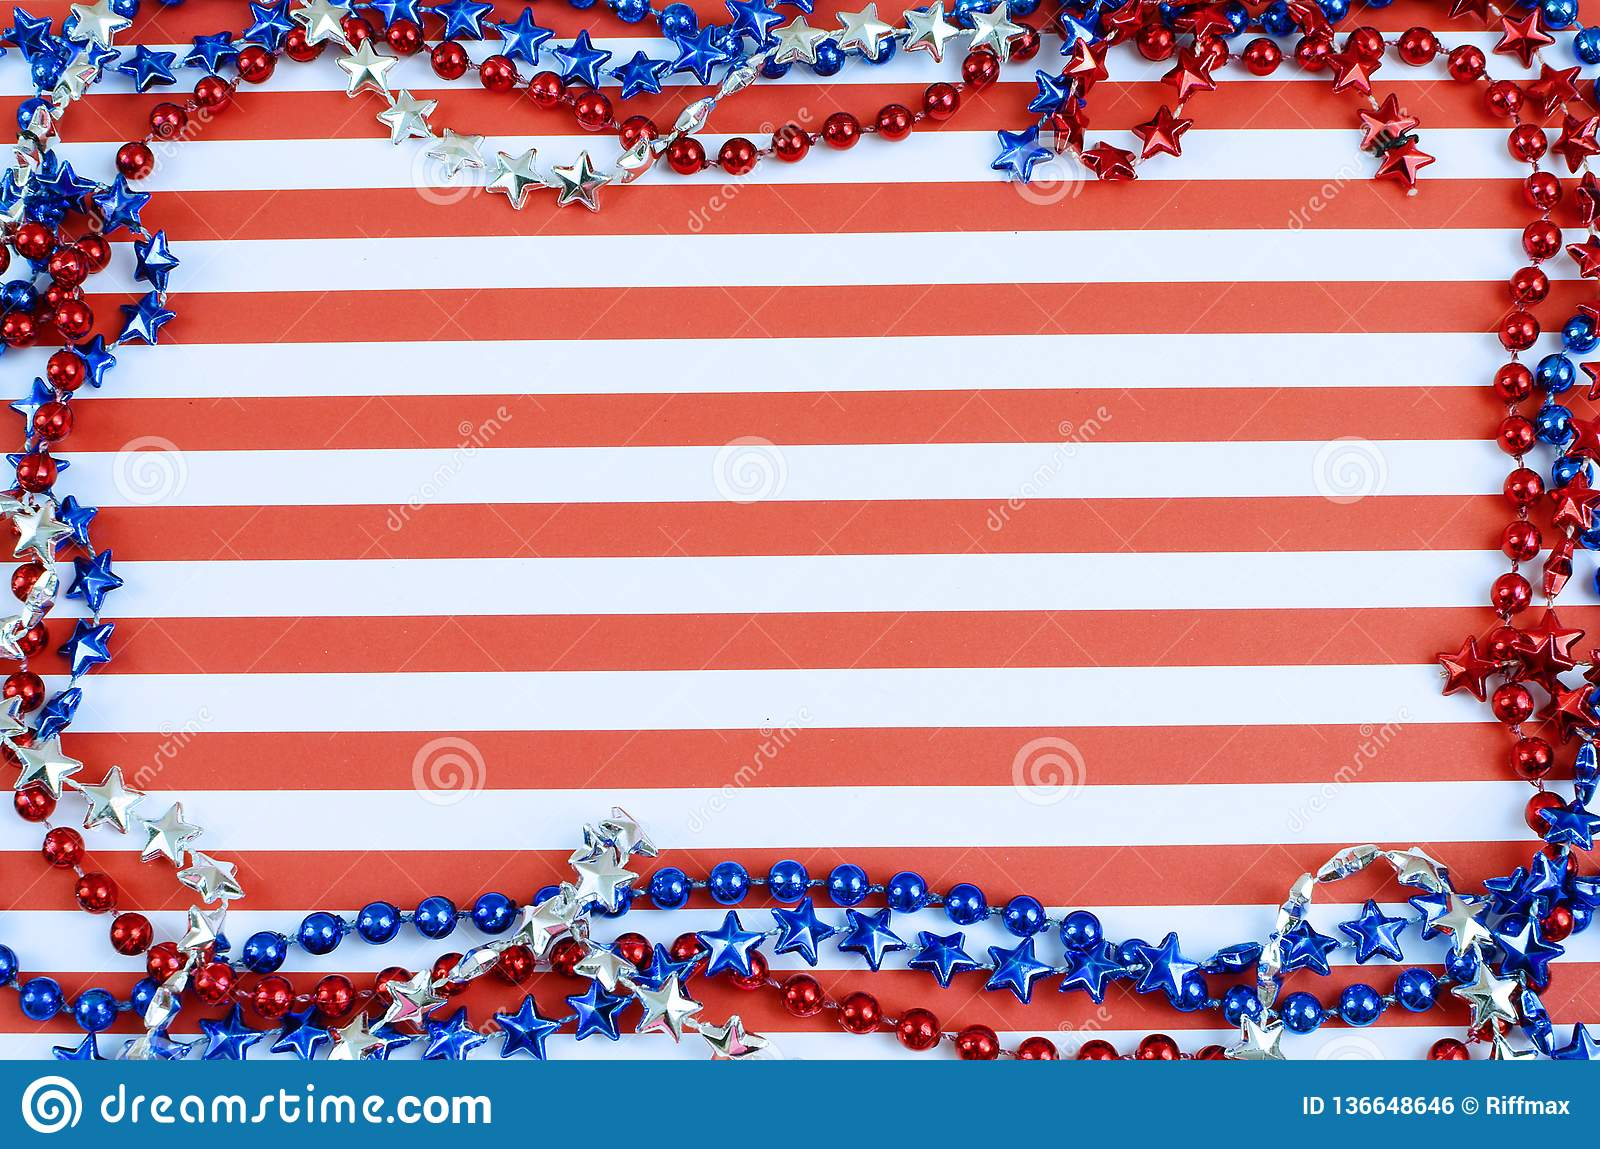 Cheerful red and white horizontal stripes form the background. Border is formed of shiny beads in red, silver and blue